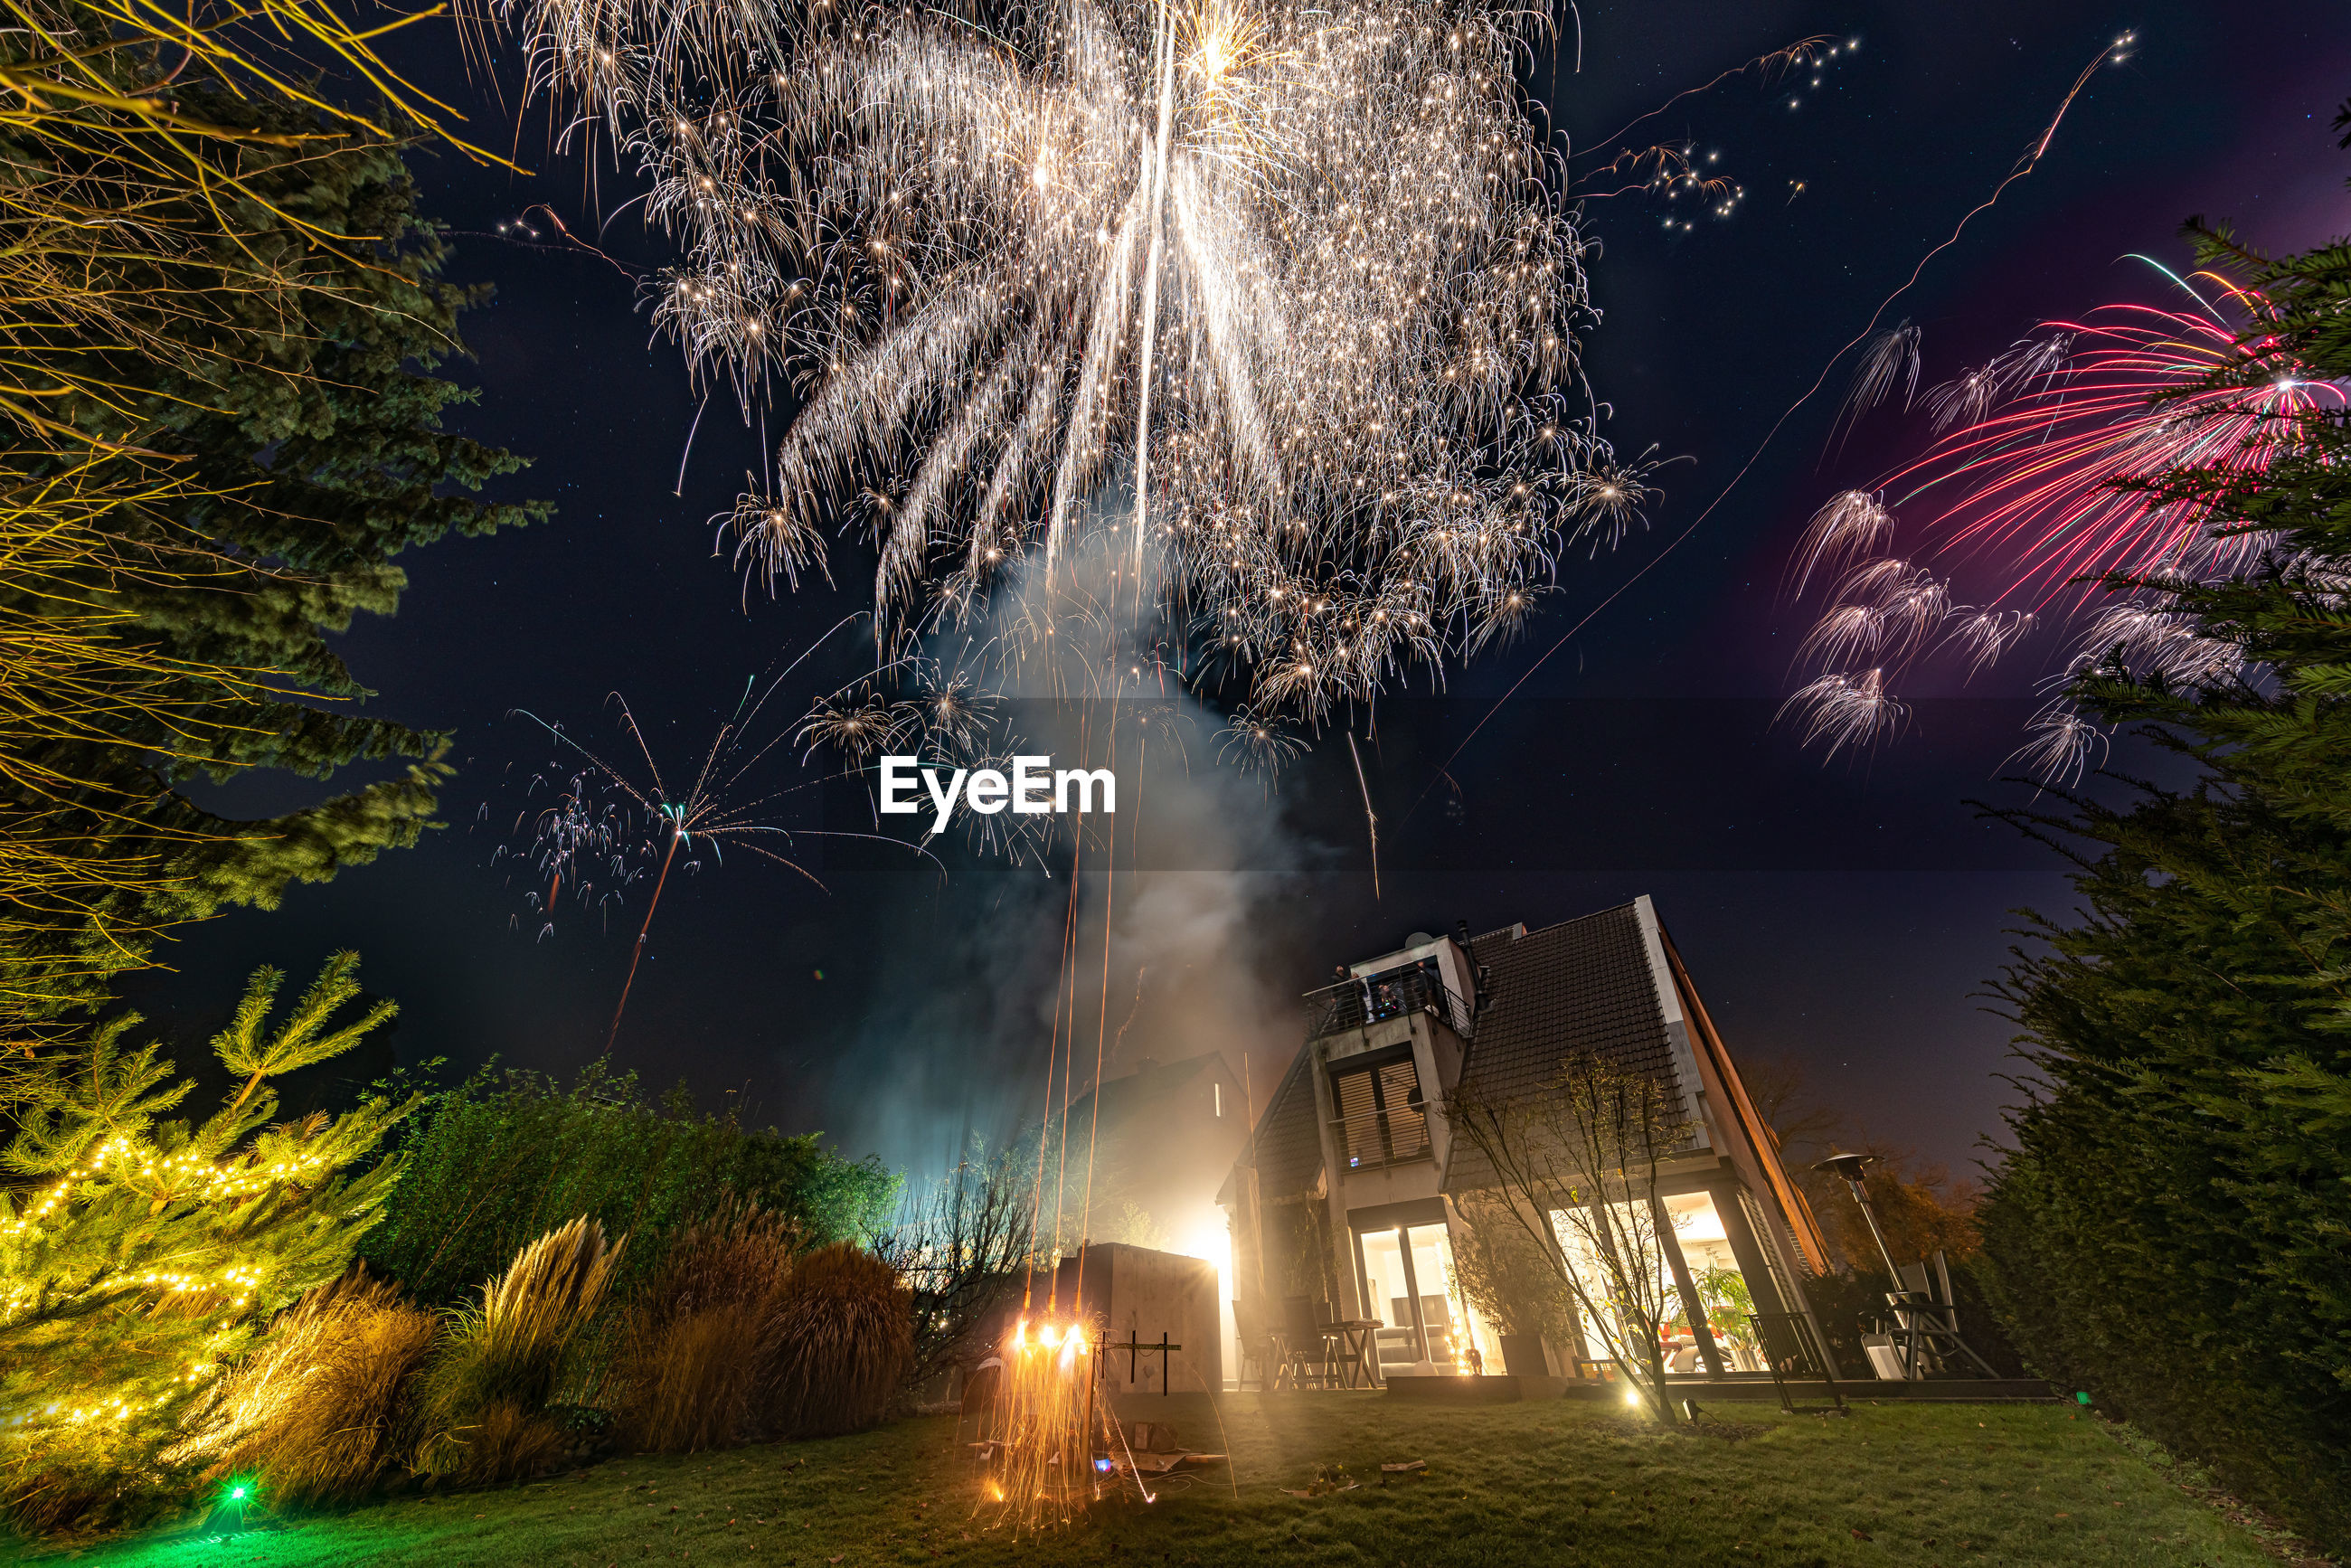 FIREWORK DISPLAY OVER TREES AGAINST SKY AT NIGHT